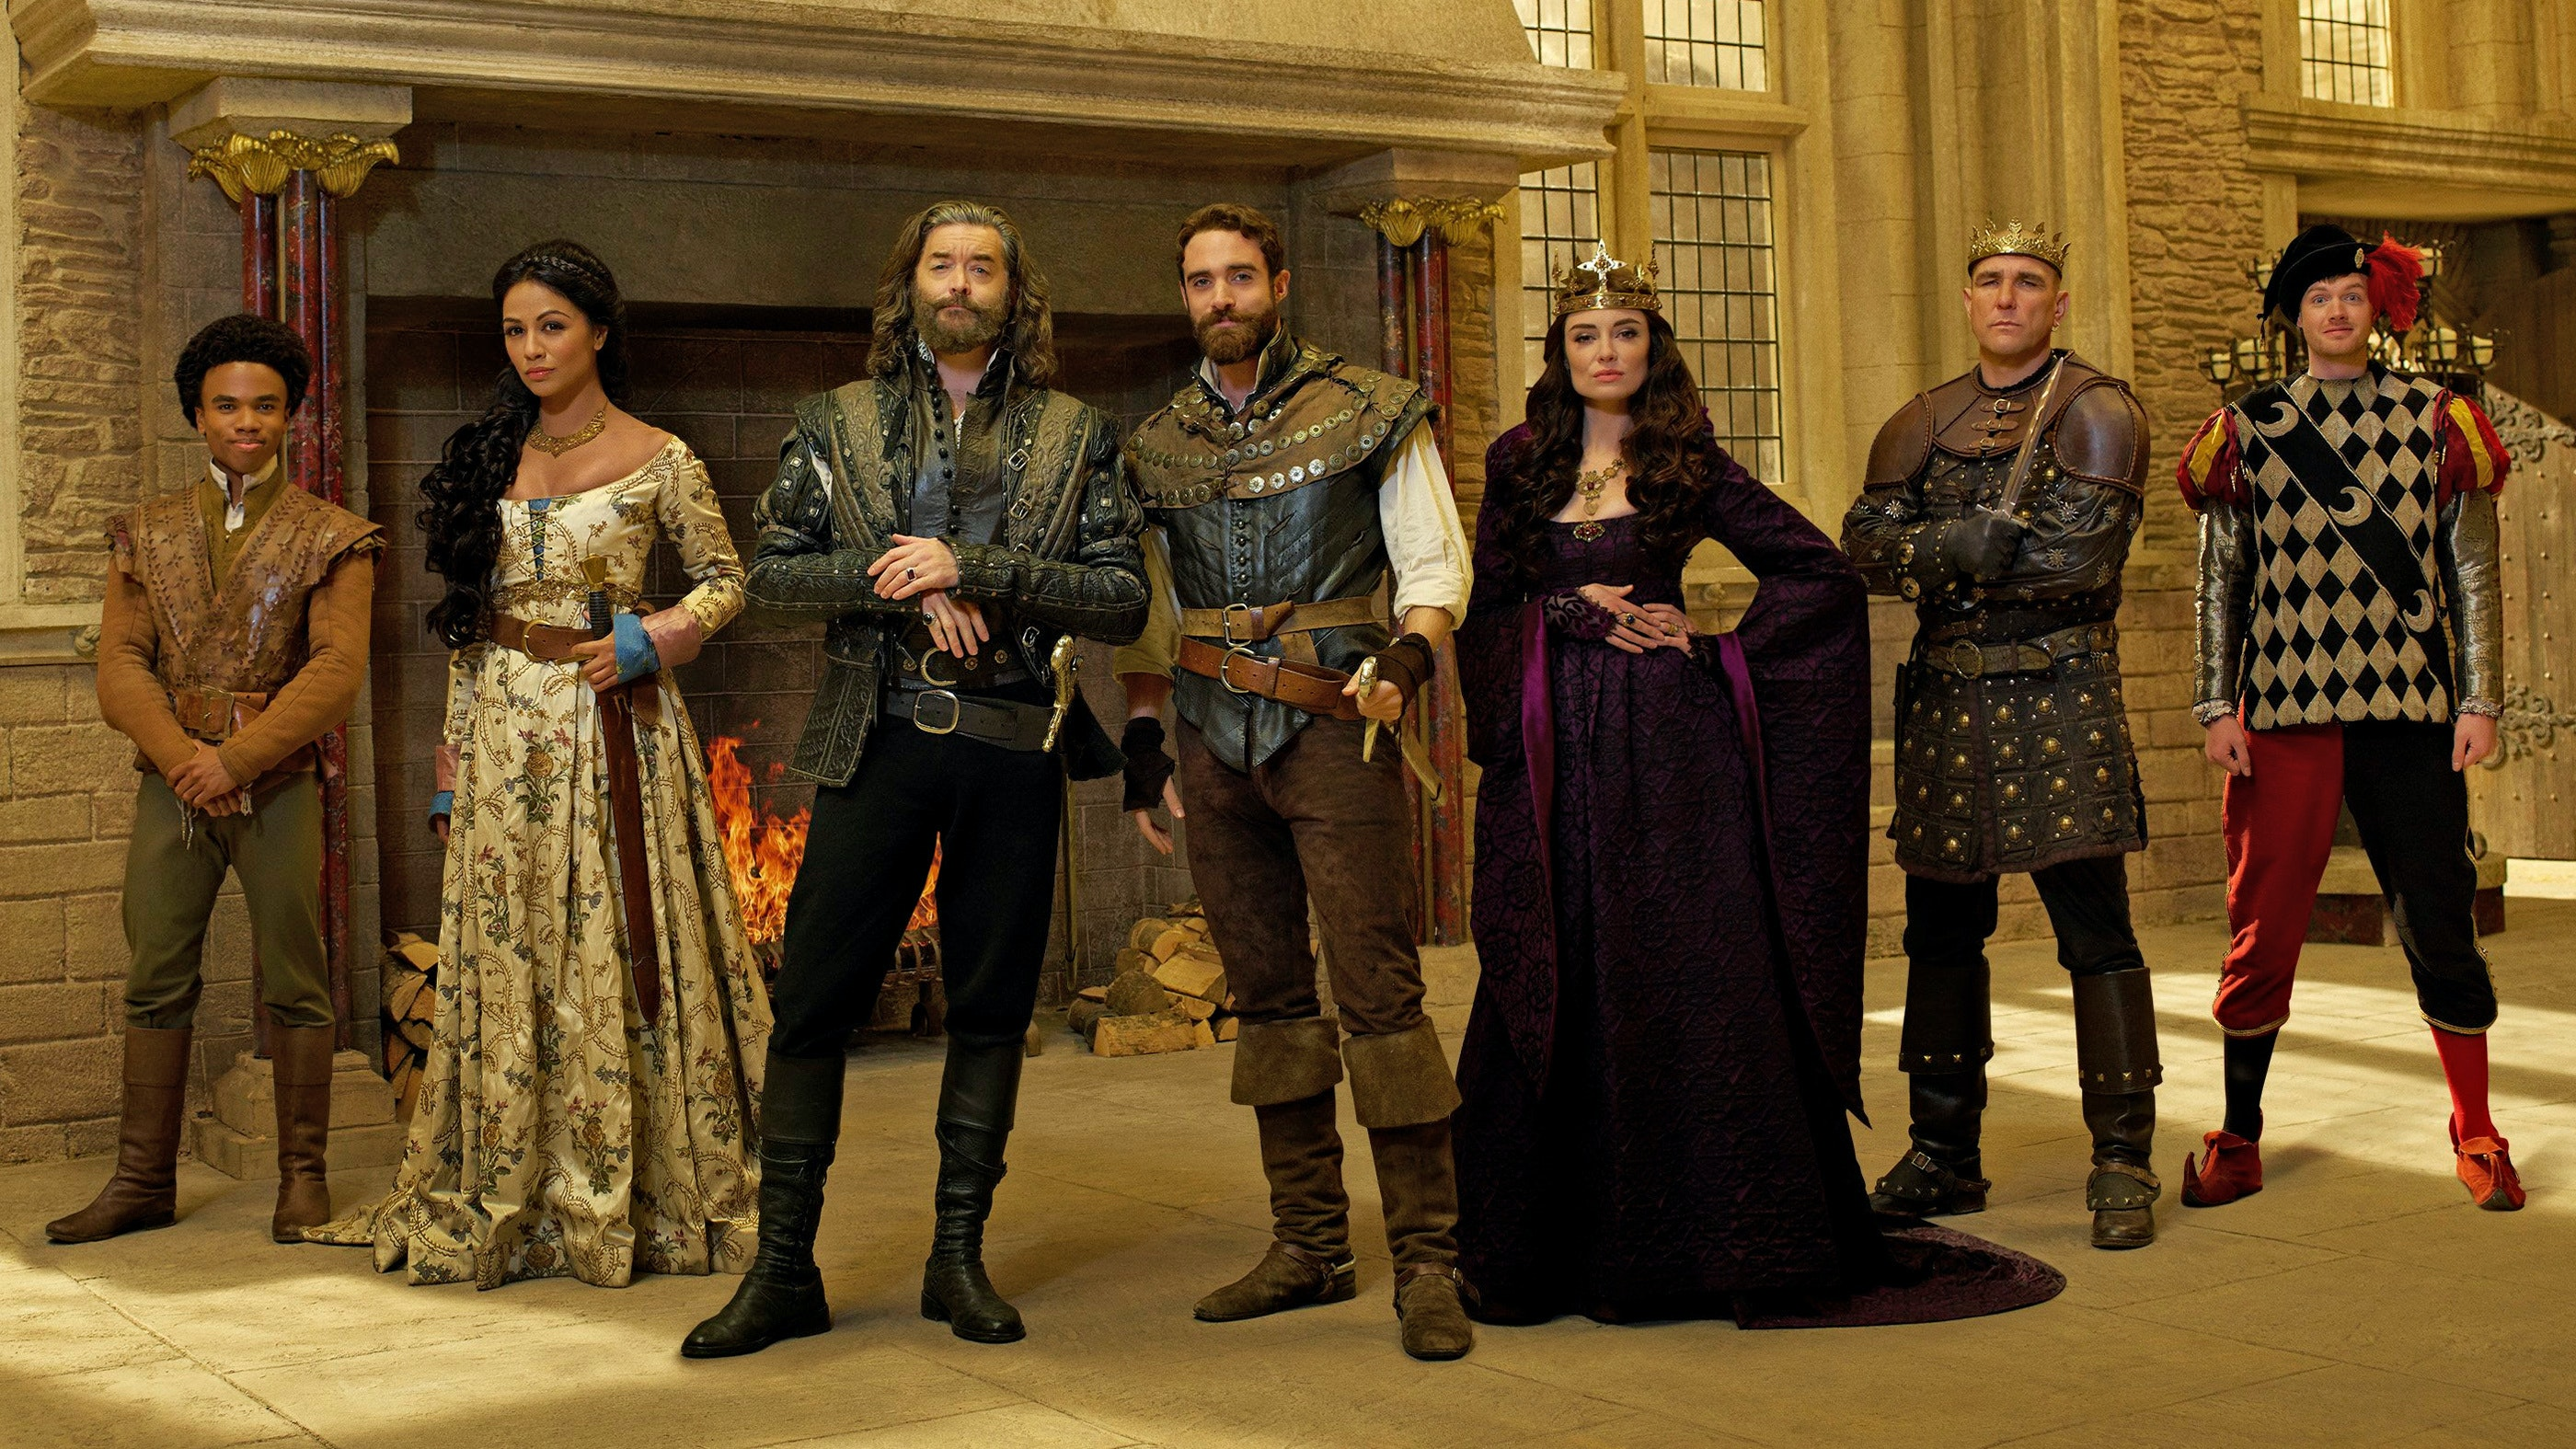 Galavant Soundtrack